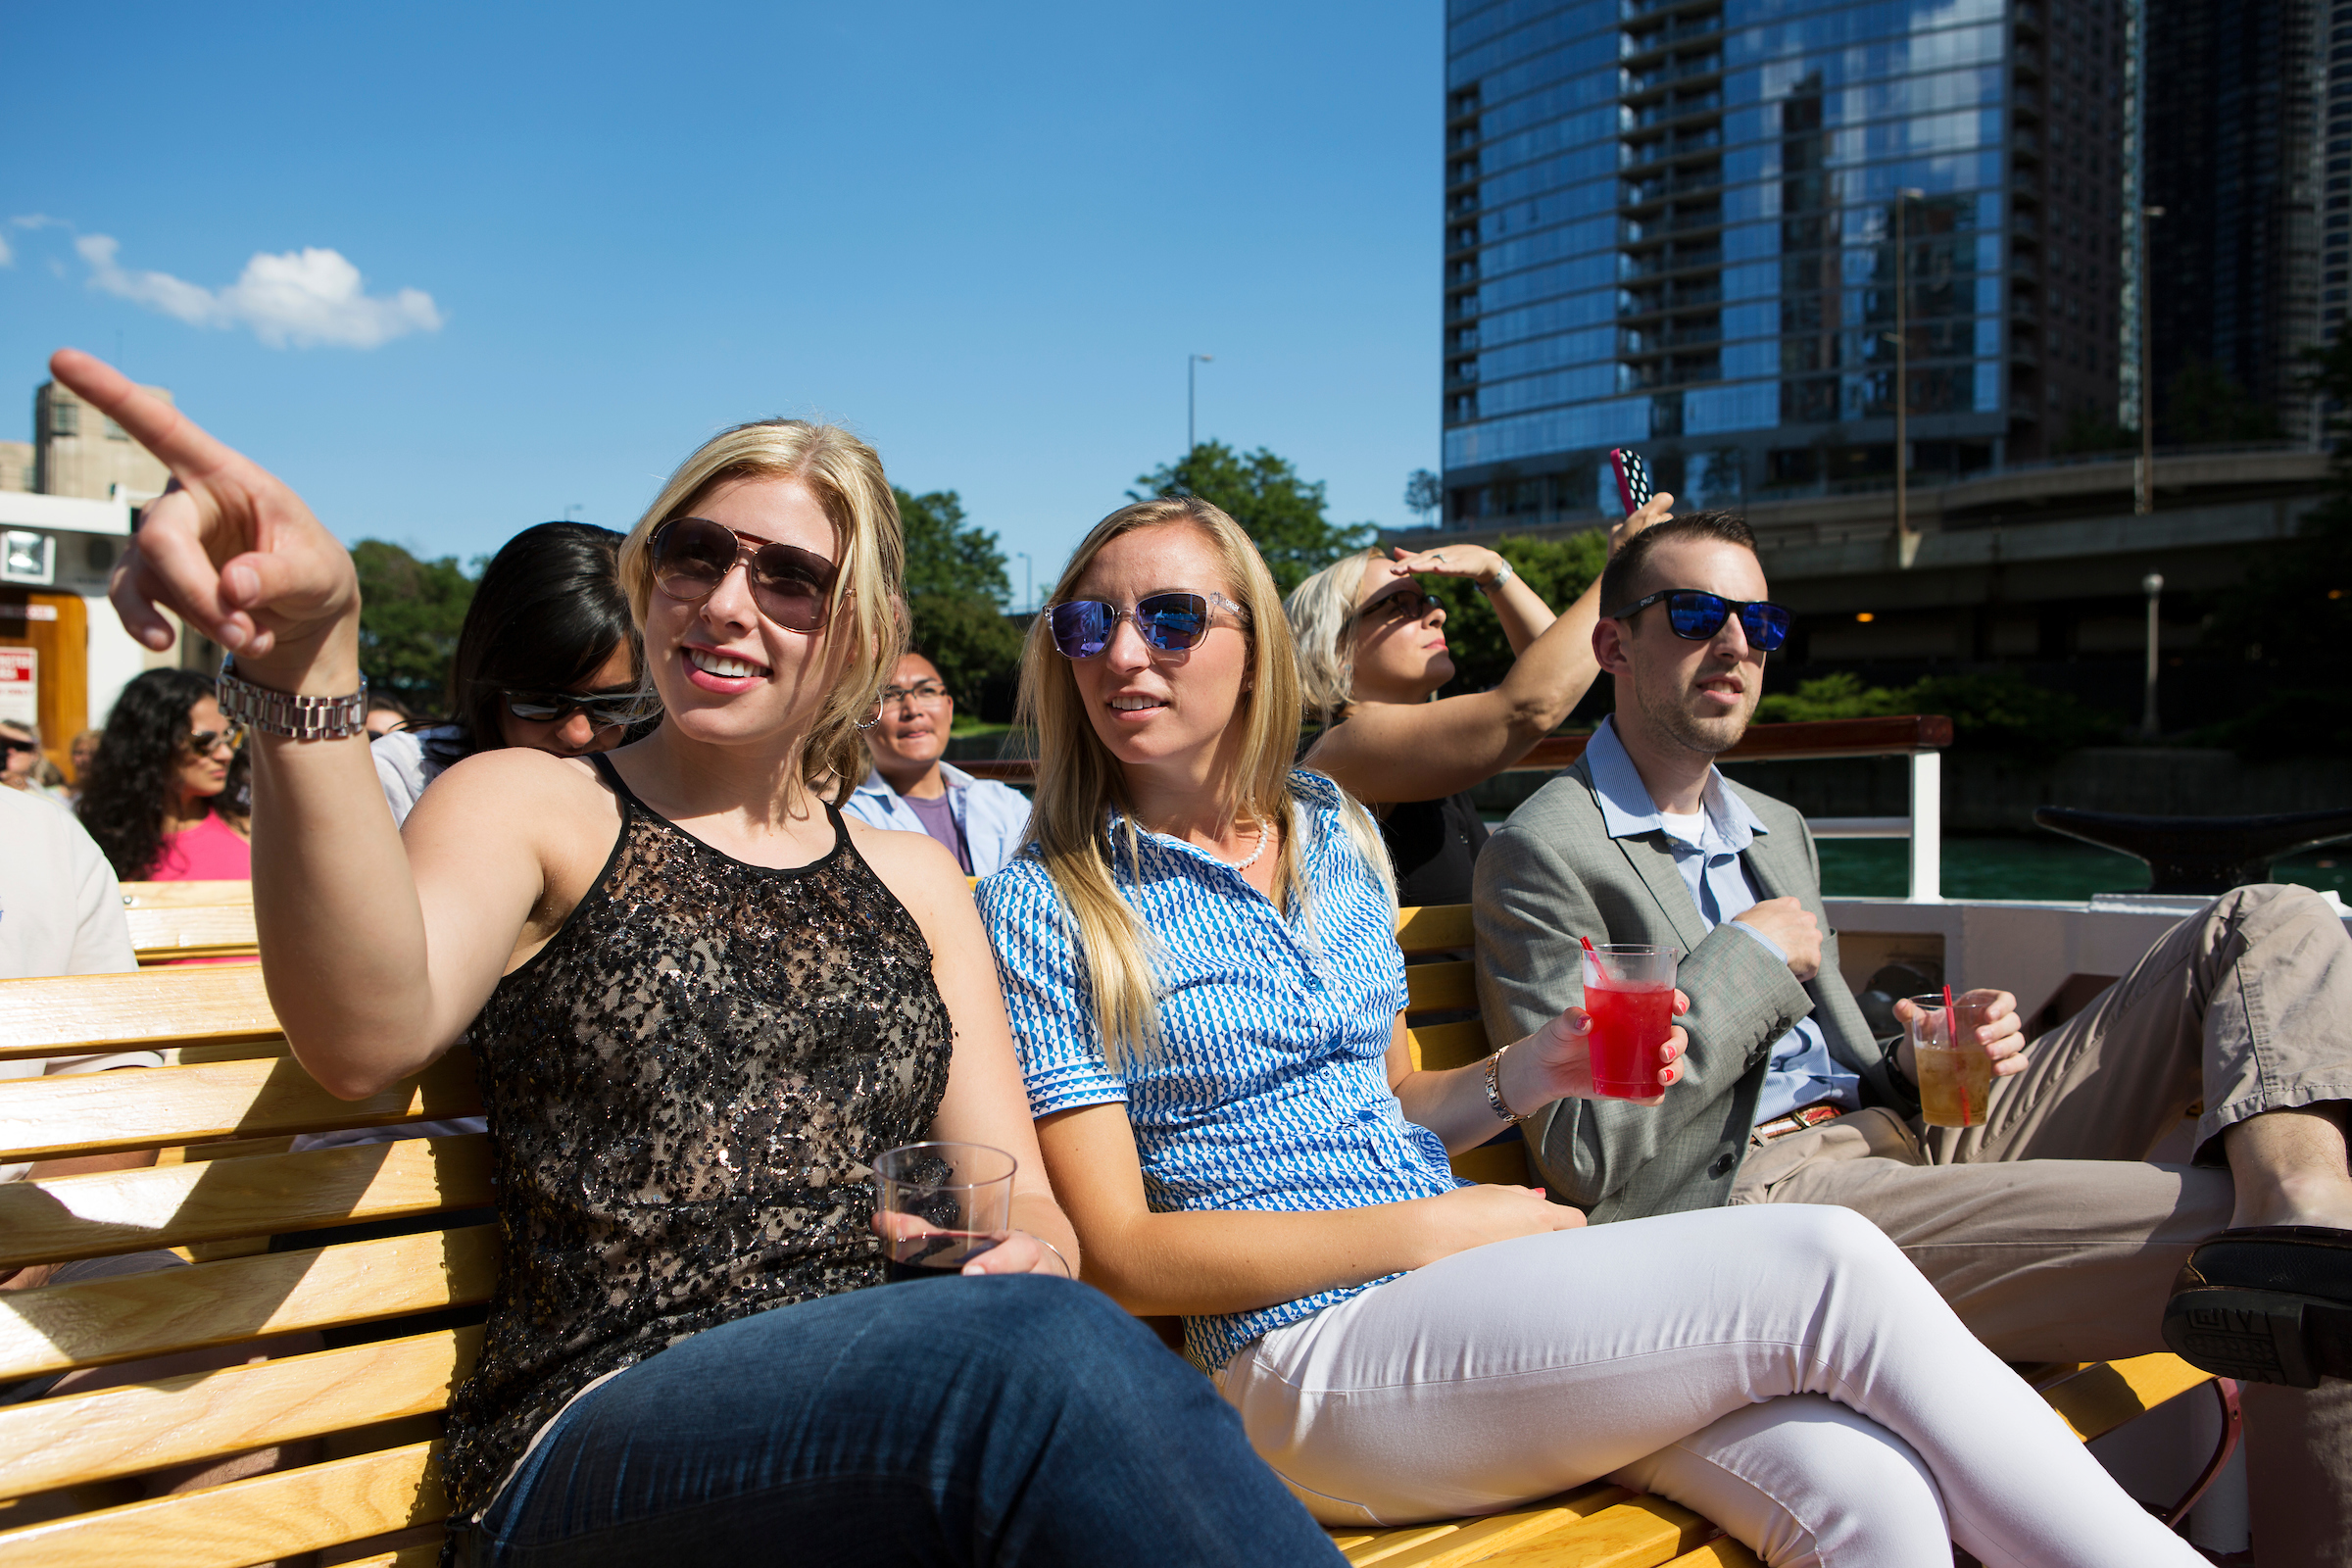 Shoreline Sightseeing save $5 on an Architecture River Tour